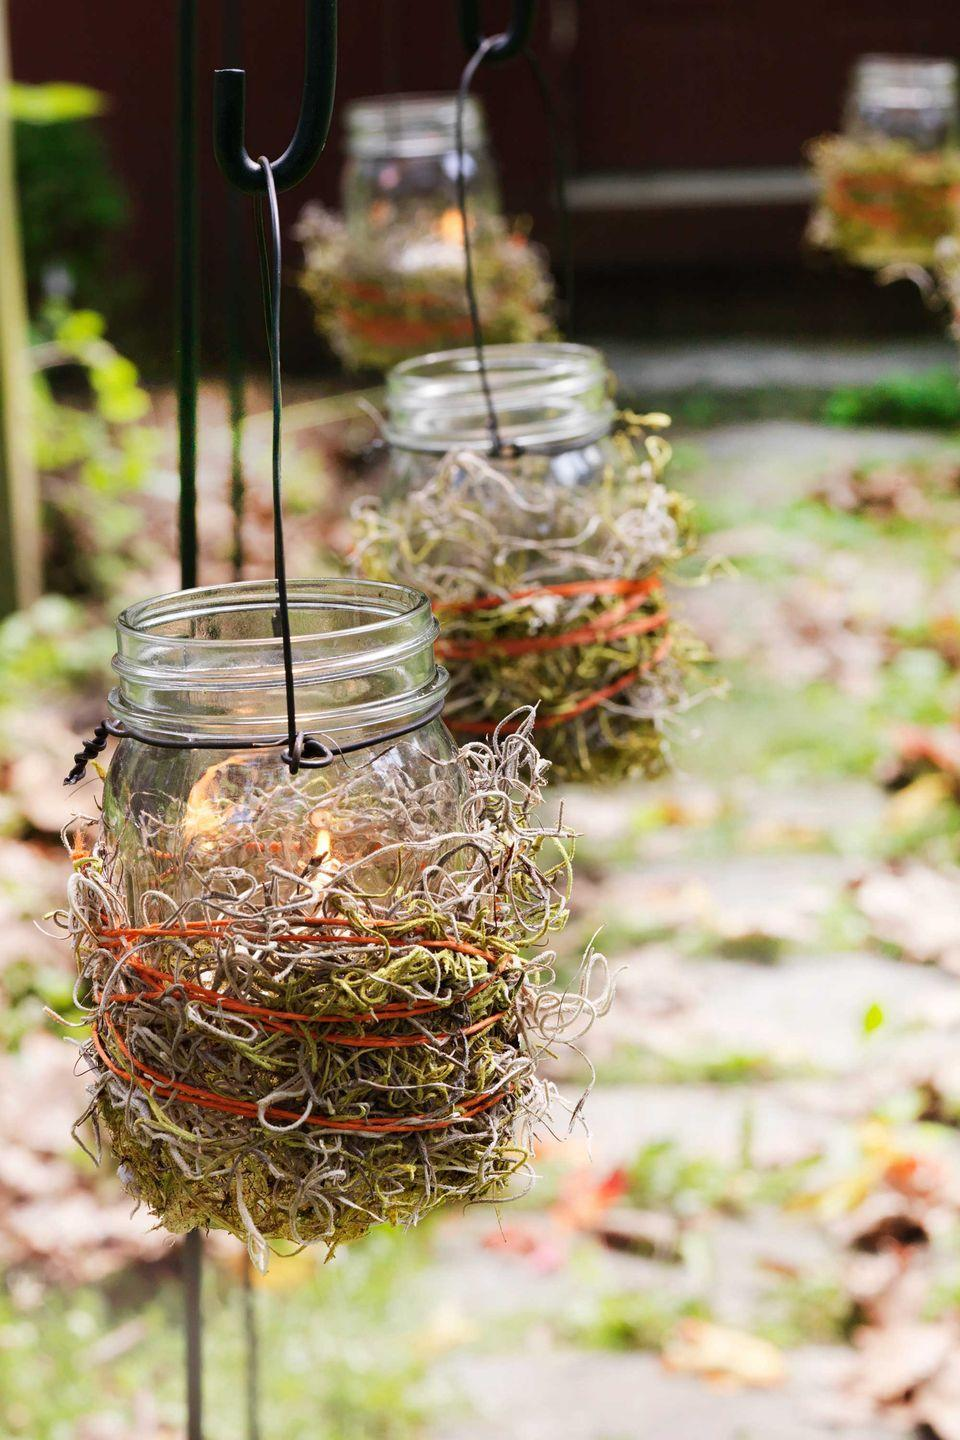 """<p>A flicker of battery-operated candlelight is just enough for trick-or-treaters to see their way to your front door. Wrap a 2"""" to 3"""" strip of <span class=""""redactor-unlink"""">adhesive-backed moss</span> around the jar; trim any extra. Loop some orange twine around the moss 3 to 4 times and knot to secure; tuck reindeer moss into the twine. Wrap the lip of the jar with baling wire (from a hardware stores) to make a handle. Pop in battery-operated tea lights; hang the lanterns from <span class=""""redactor-unlink"""">shepherd's hooks</span>.</p><p><strong>What You'll Need</strong>: <a href=""""https://www.amazon.com/Flameless-Candles-Battery-Holidays-Decoration/dp/B0799G5W6Y/ref=sr_1_3_sspa?dchild=1&keywords=tea+lights&qid=1594999561&sr=8-3-spons&psc=1&spLa=ZW5jcnlwdGVkUXVhbGlmaWVyPUEzVjZGOVZJSEZWMVFFJmVuY3J5cHRlZElkPUEwMTUzMTk0TEs3ODlJVkRFODYwJmVuY3J5cHRlZEFkSWQ9QTAyMjk0NTYzMUZQQTdPNko5N0dZJndpZGdldE5hbWU9c3BfYXRmJmFjdGlvbj1jbGlja1JlZGlyZWN0JmRvTm90TG9nQ2xpY2s9dHJ1ZQ%3D%3D&tag=syn-yahoo-20&ascsubtag=%5Bartid%7C10070.g.1279%5Bsrc%7Cyahoo-us"""" rel=""""nofollow noopener"""" target=""""_blank"""" data-ylk=""""slk:Mini tea lights"""" class=""""link rapid-noclick-resp"""">Mini tea lights</a> ($8, Amazon); <a href=""""https://www.amazon.com/Aleenes-Purpose-Tacky-Adhesive-11-Ounce/dp/B001689P10/ref=sr_1_13?dchild=1&keywords=adhesive+moss&qid=1594999608&sr=8-13&tag=syn-yahoo-20&ascsubtag=%5Bartid%7C10070.g.1279%5Bsrc%7Cyahoo-us"""" rel=""""nofollow noopener"""" target=""""_blank"""" data-ylk=""""slk:adhesive spray"""" class=""""link rapid-noclick-resp"""">adhesive spray</a> ($10, Amazon); <a href=""""https://www.amazon.com/Super-Moss-59834-23310-B00I6AKFI8/dp/B00I6AKFI8/ref=sr_1_7?dchild=1&keywords=moss&qid=1594999647&sr=8-7&th=1&psc=1&tag=syn-yahoo-20&ascsubtag=%5Bartid%7C10070.g.1279%5Bsrc%7Cyahoo-us"""" rel=""""nofollow noopener"""" target=""""_blank"""" data-ylk=""""slk:moss"""" class=""""link rapid-noclick-resp"""">moss </a>($8, Amazon); </p>"""